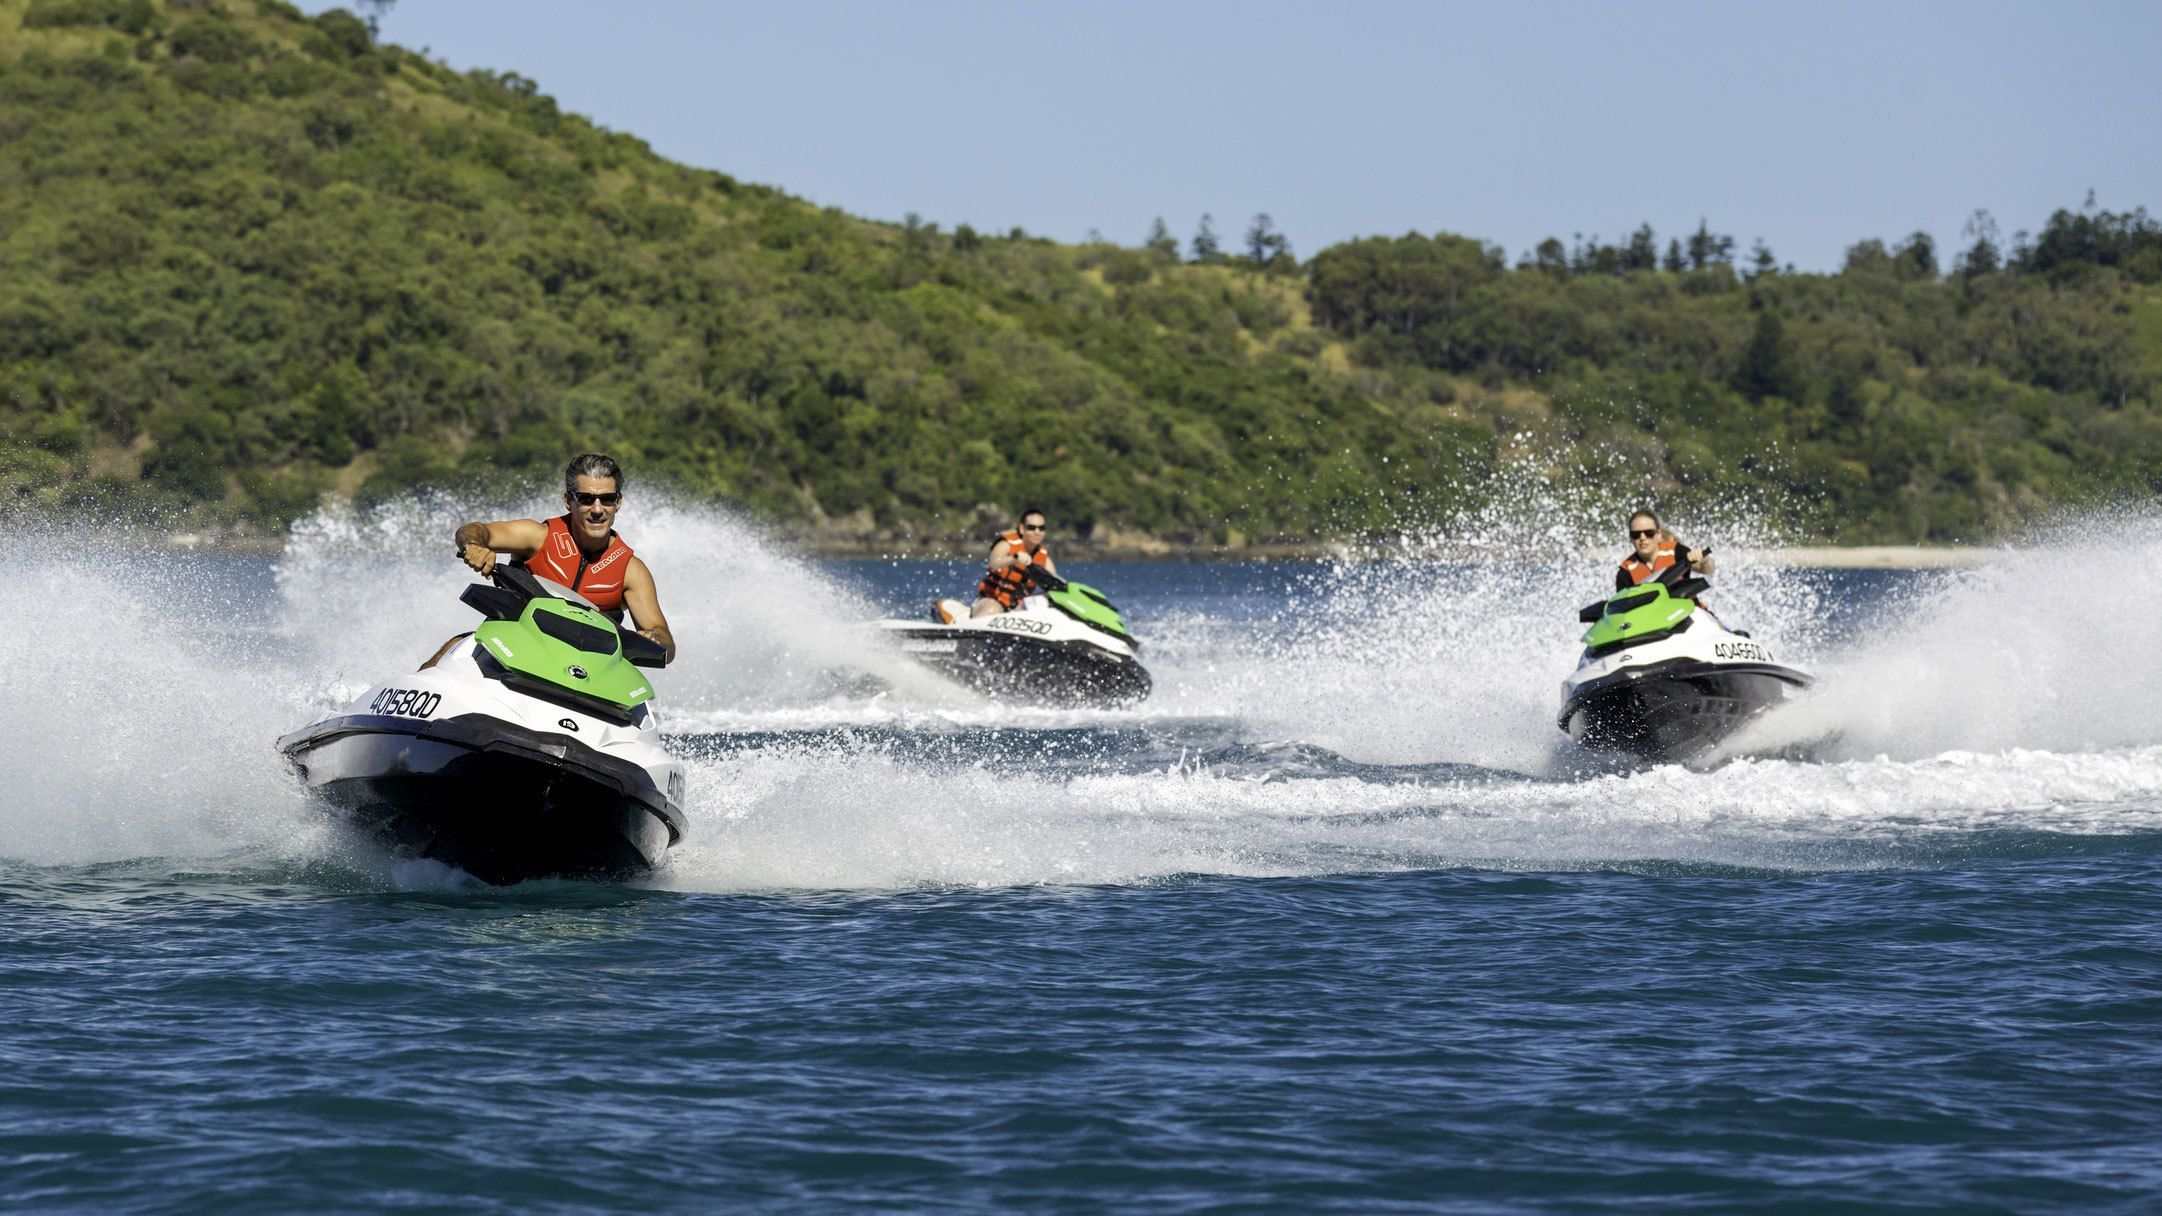 Group of people on jet skis in Whitsunday